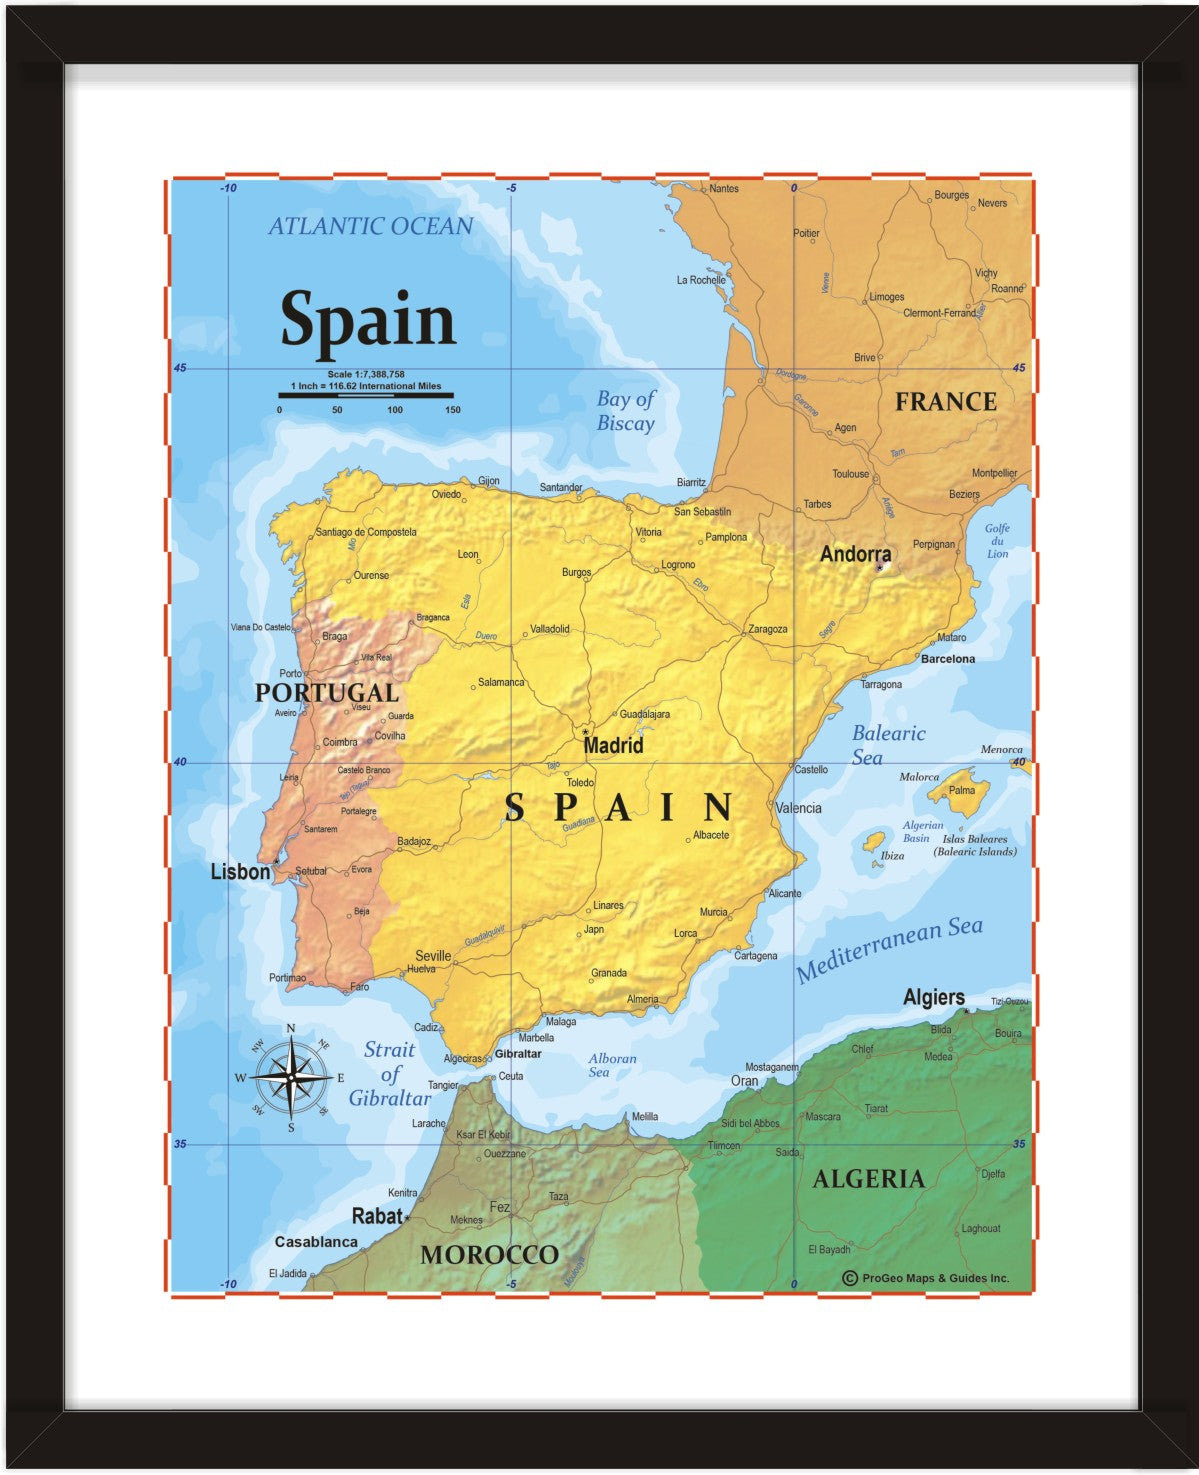 Map Of Spain For Printing.Progeo Map Of Spain 8 X 10 Print Or Framed Progeo Maps Guides